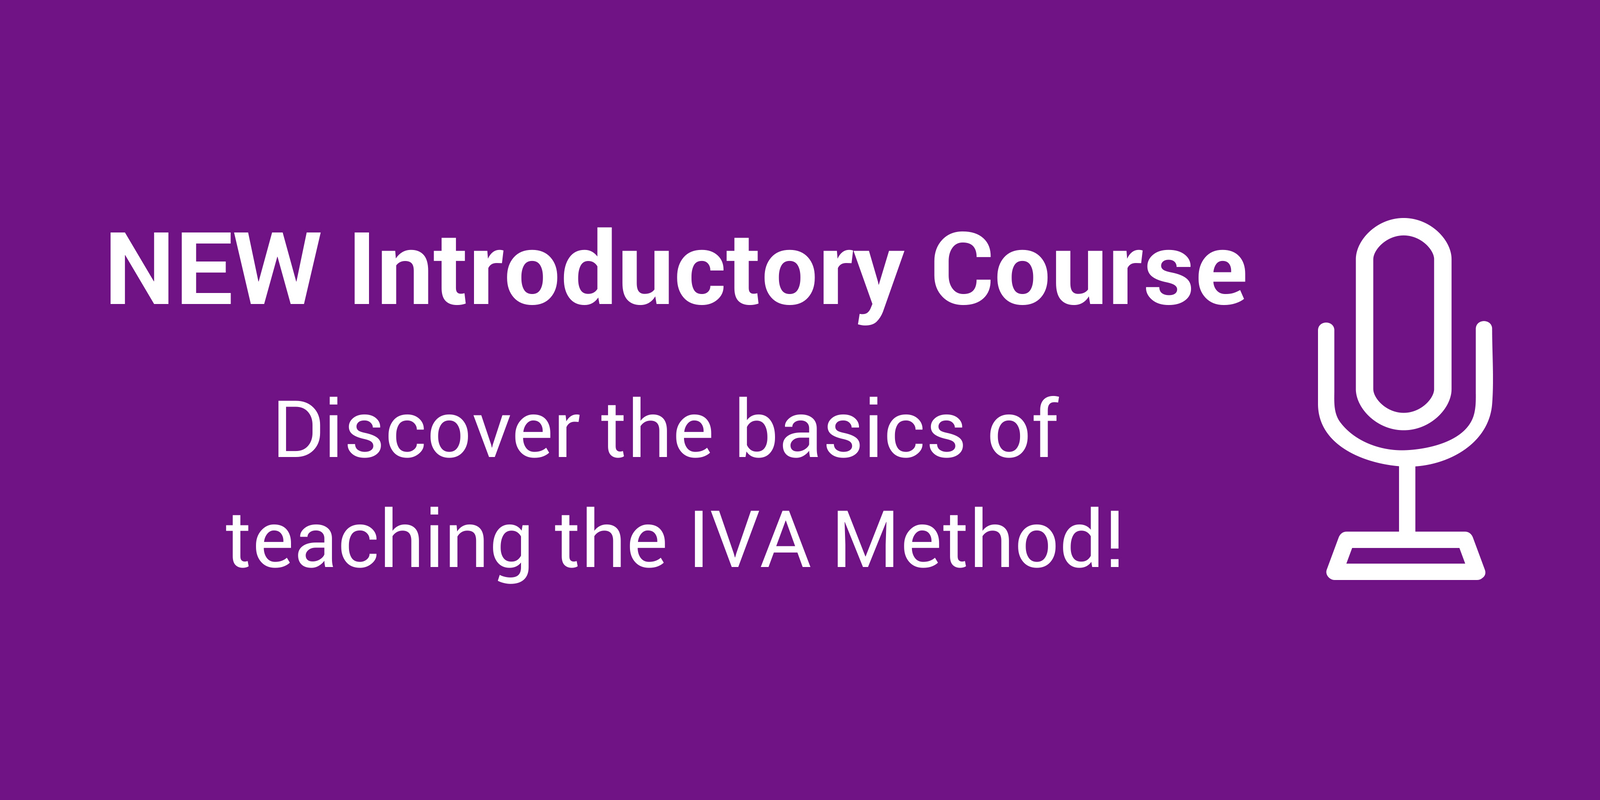 Introductory Course to teaching the IVA Method